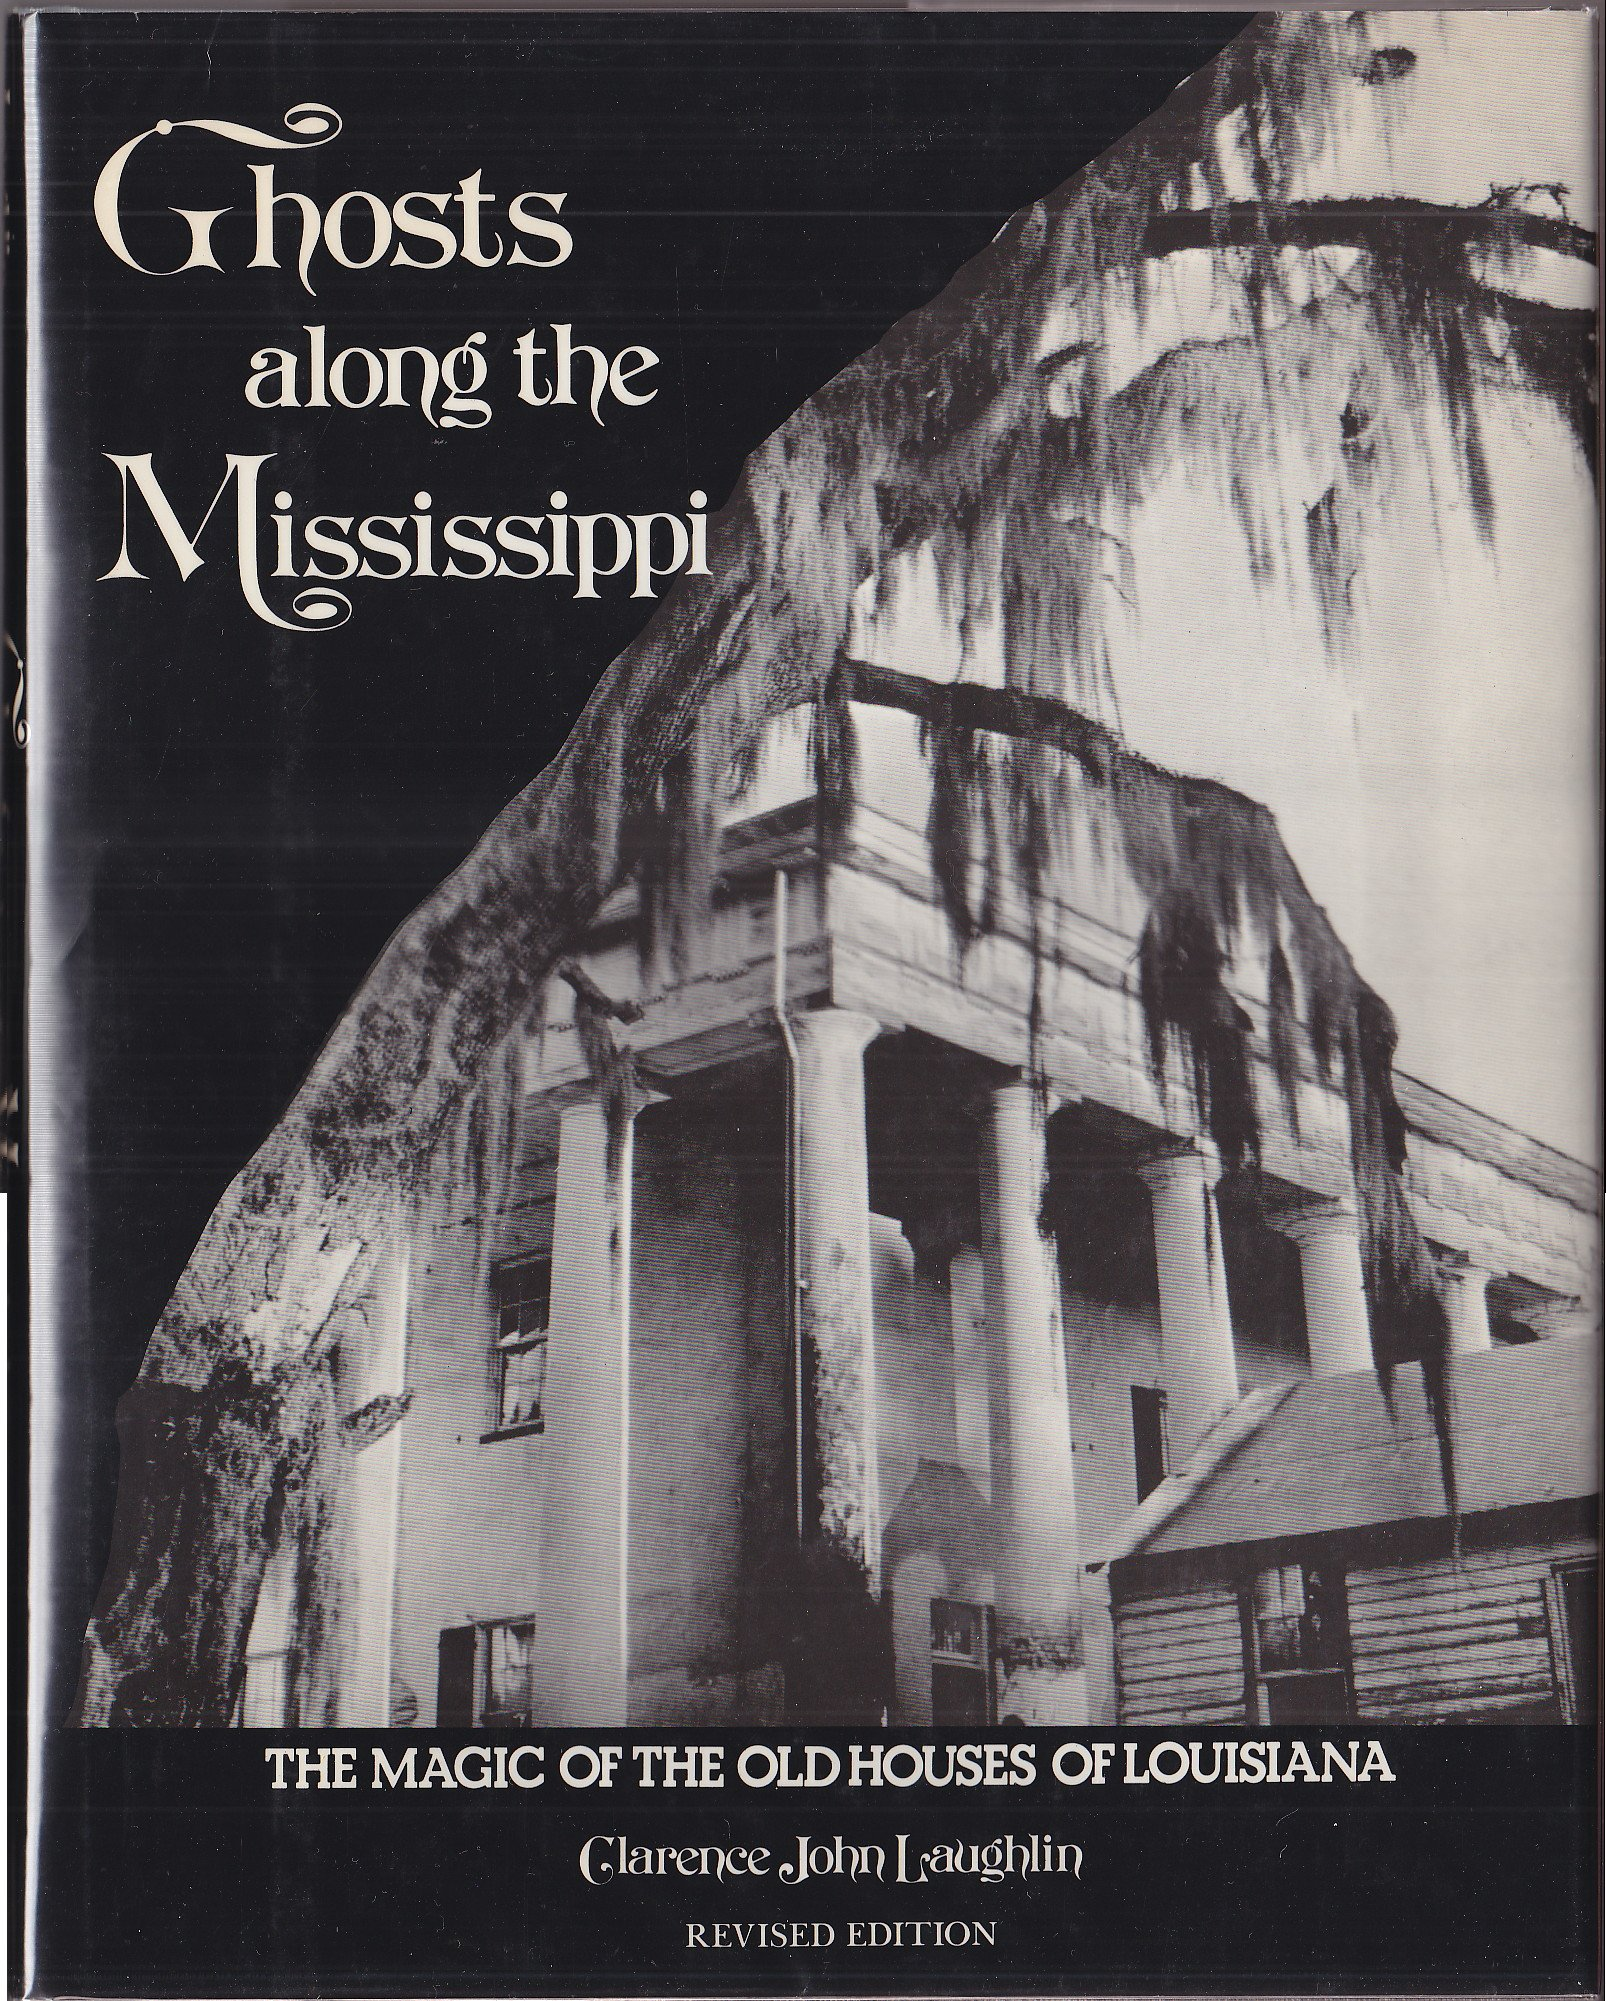 Ghosts Along The Mississippi: The Magic of the Old Houses of ... on beaufort south carolina old plantations, old florida plantations, old slavery plantations, old natchez plantations, old hawaii plantations, old new orleans plantations, old savannah plantations, old southern plantations,